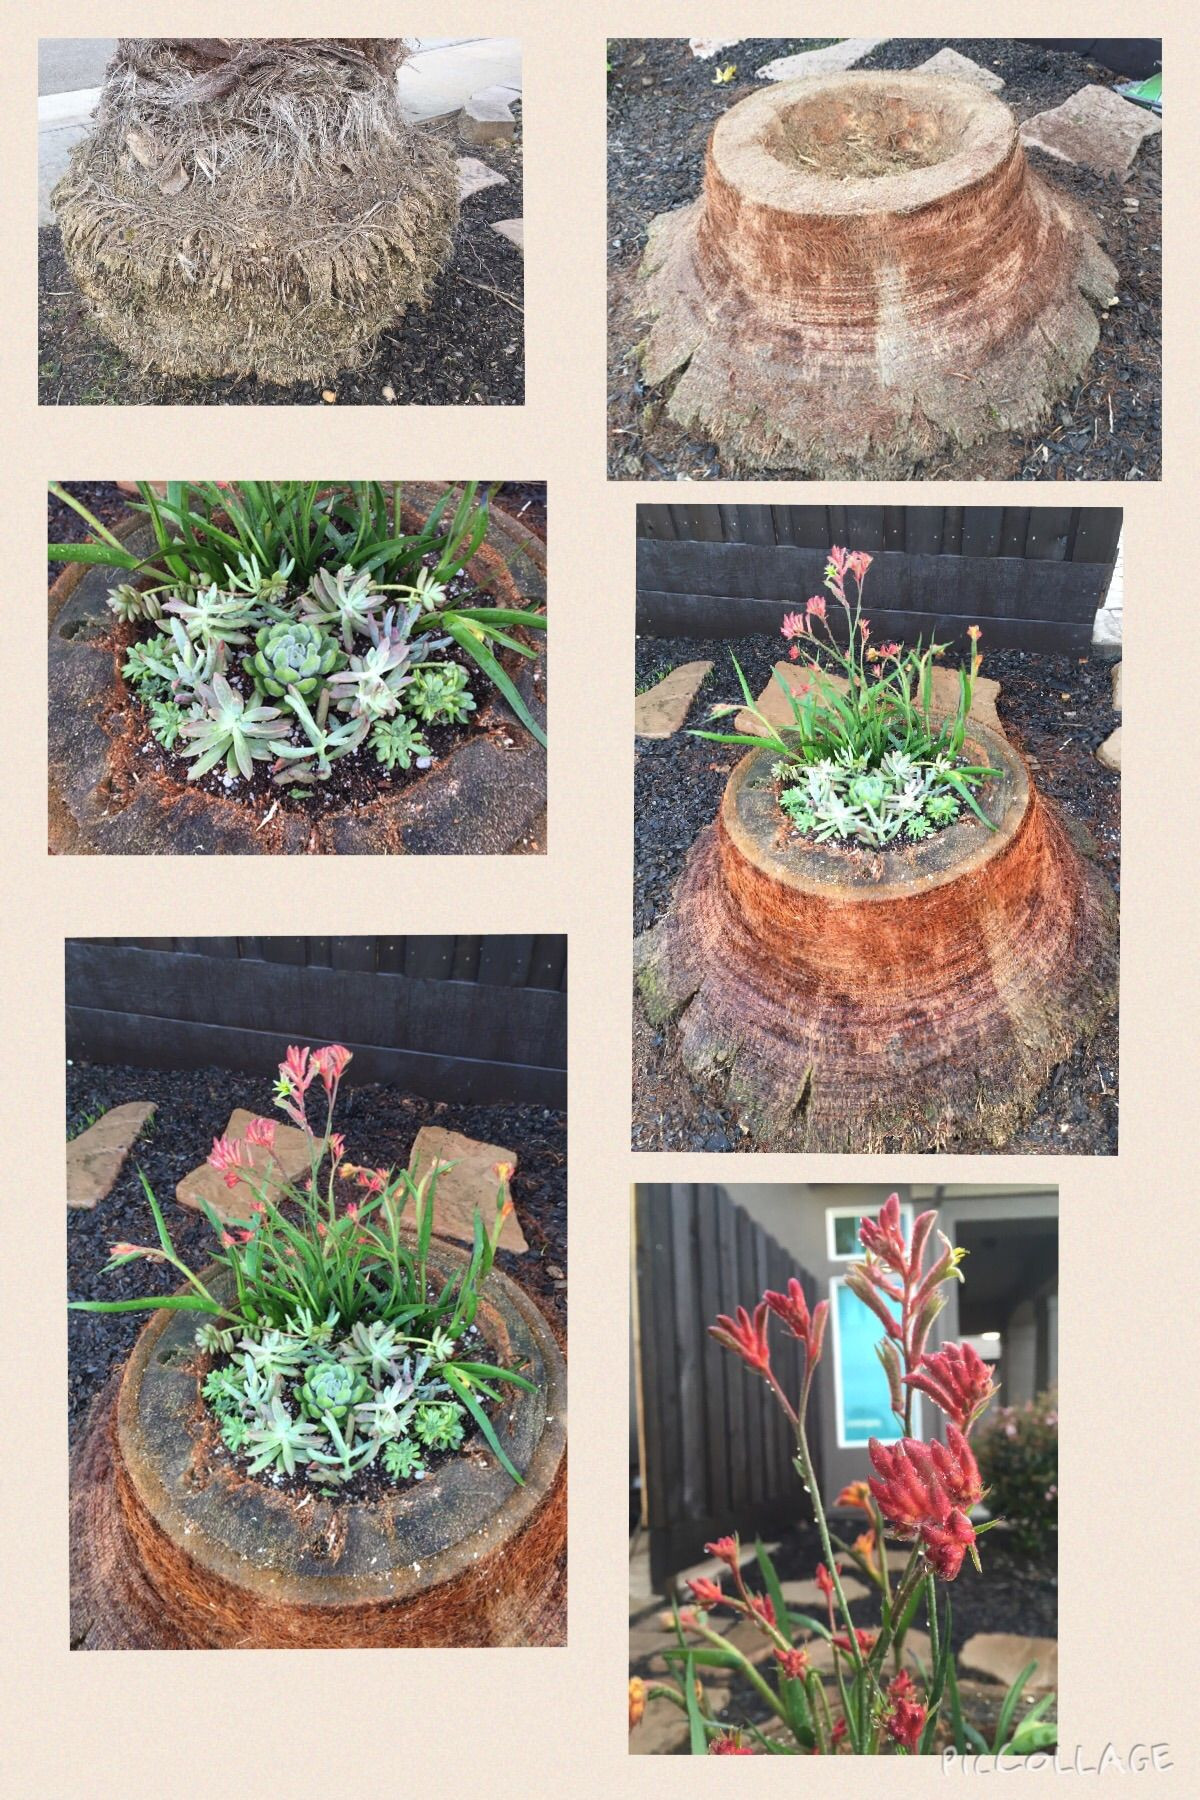 It started as a dull palm tree stump and turned into a beautiful succulent creation